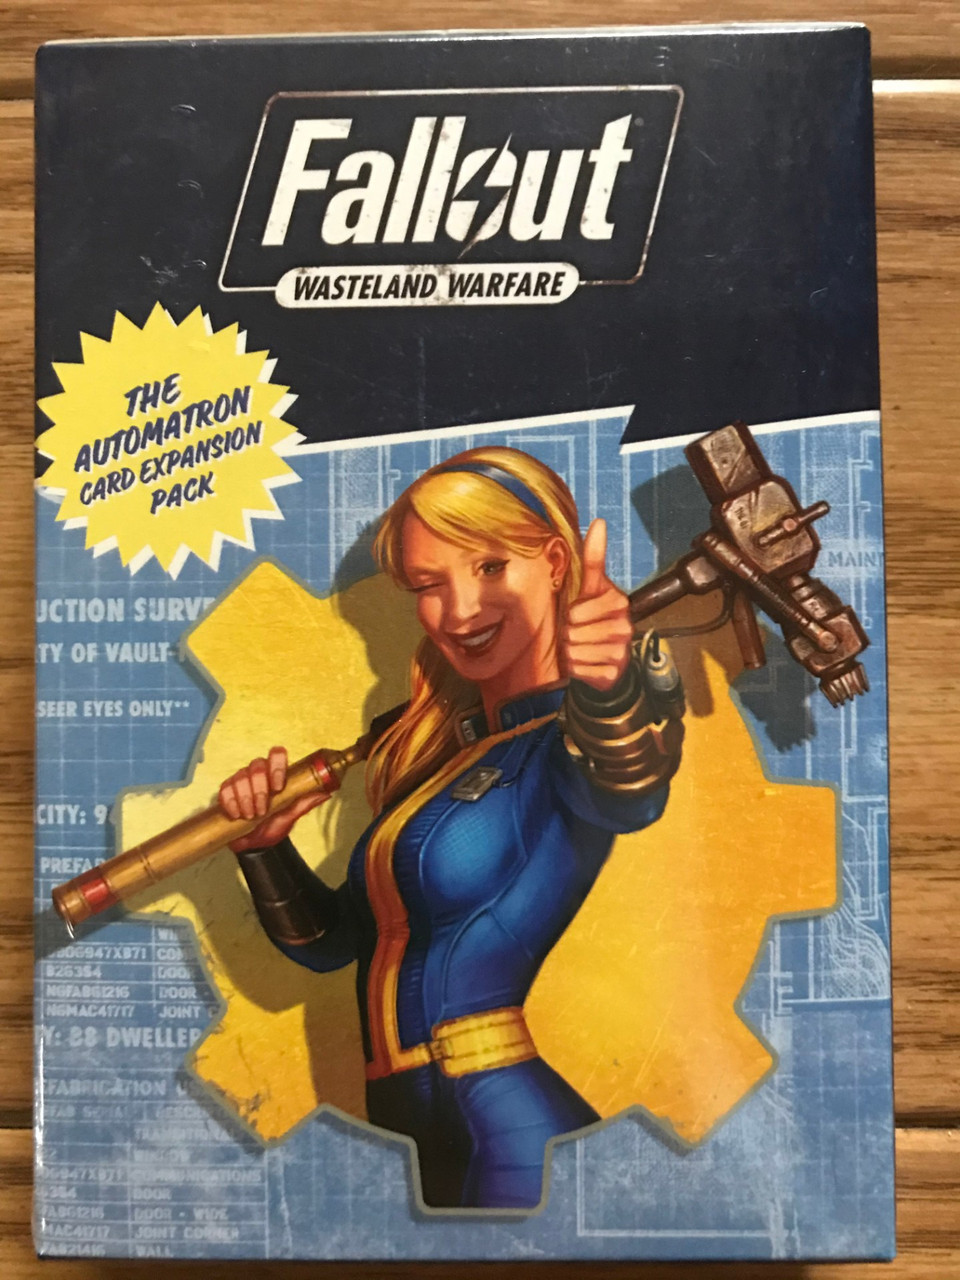 Fallout RPG: Wasteland Warfare - Automatron Card Pack ADD'L ITEMS SHIP FREE